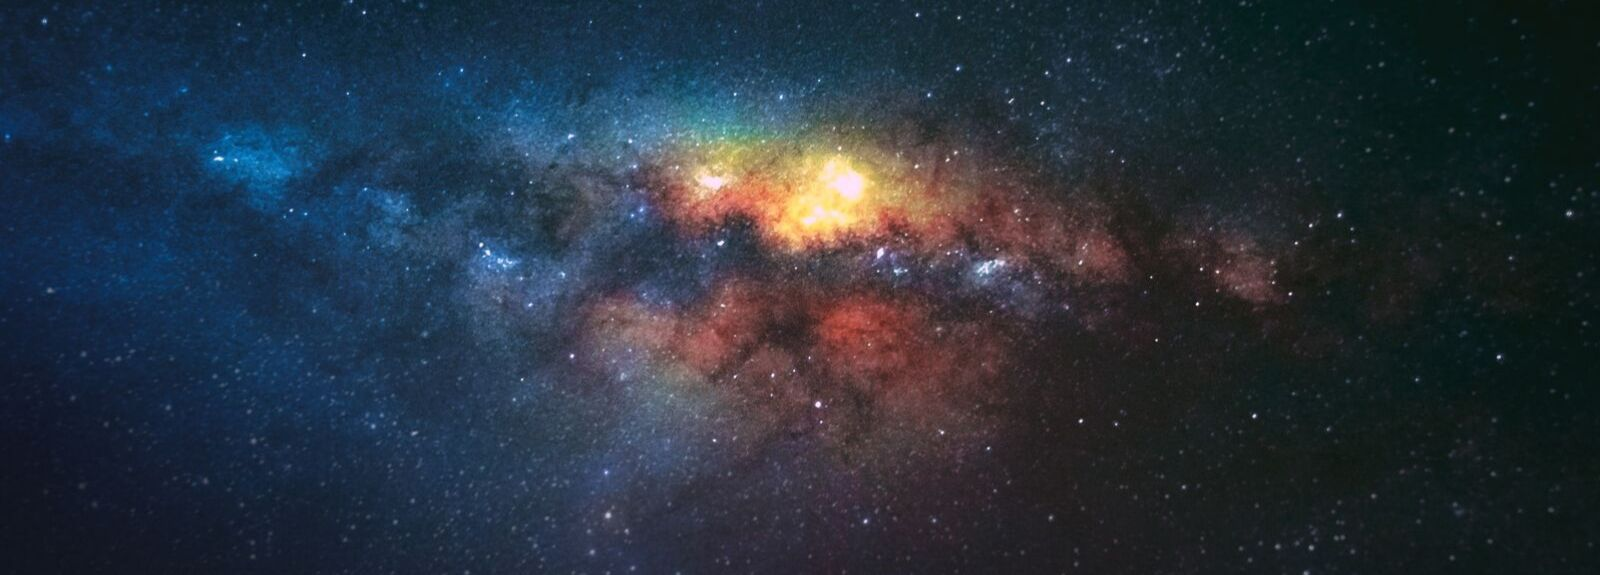 Colourful image of space